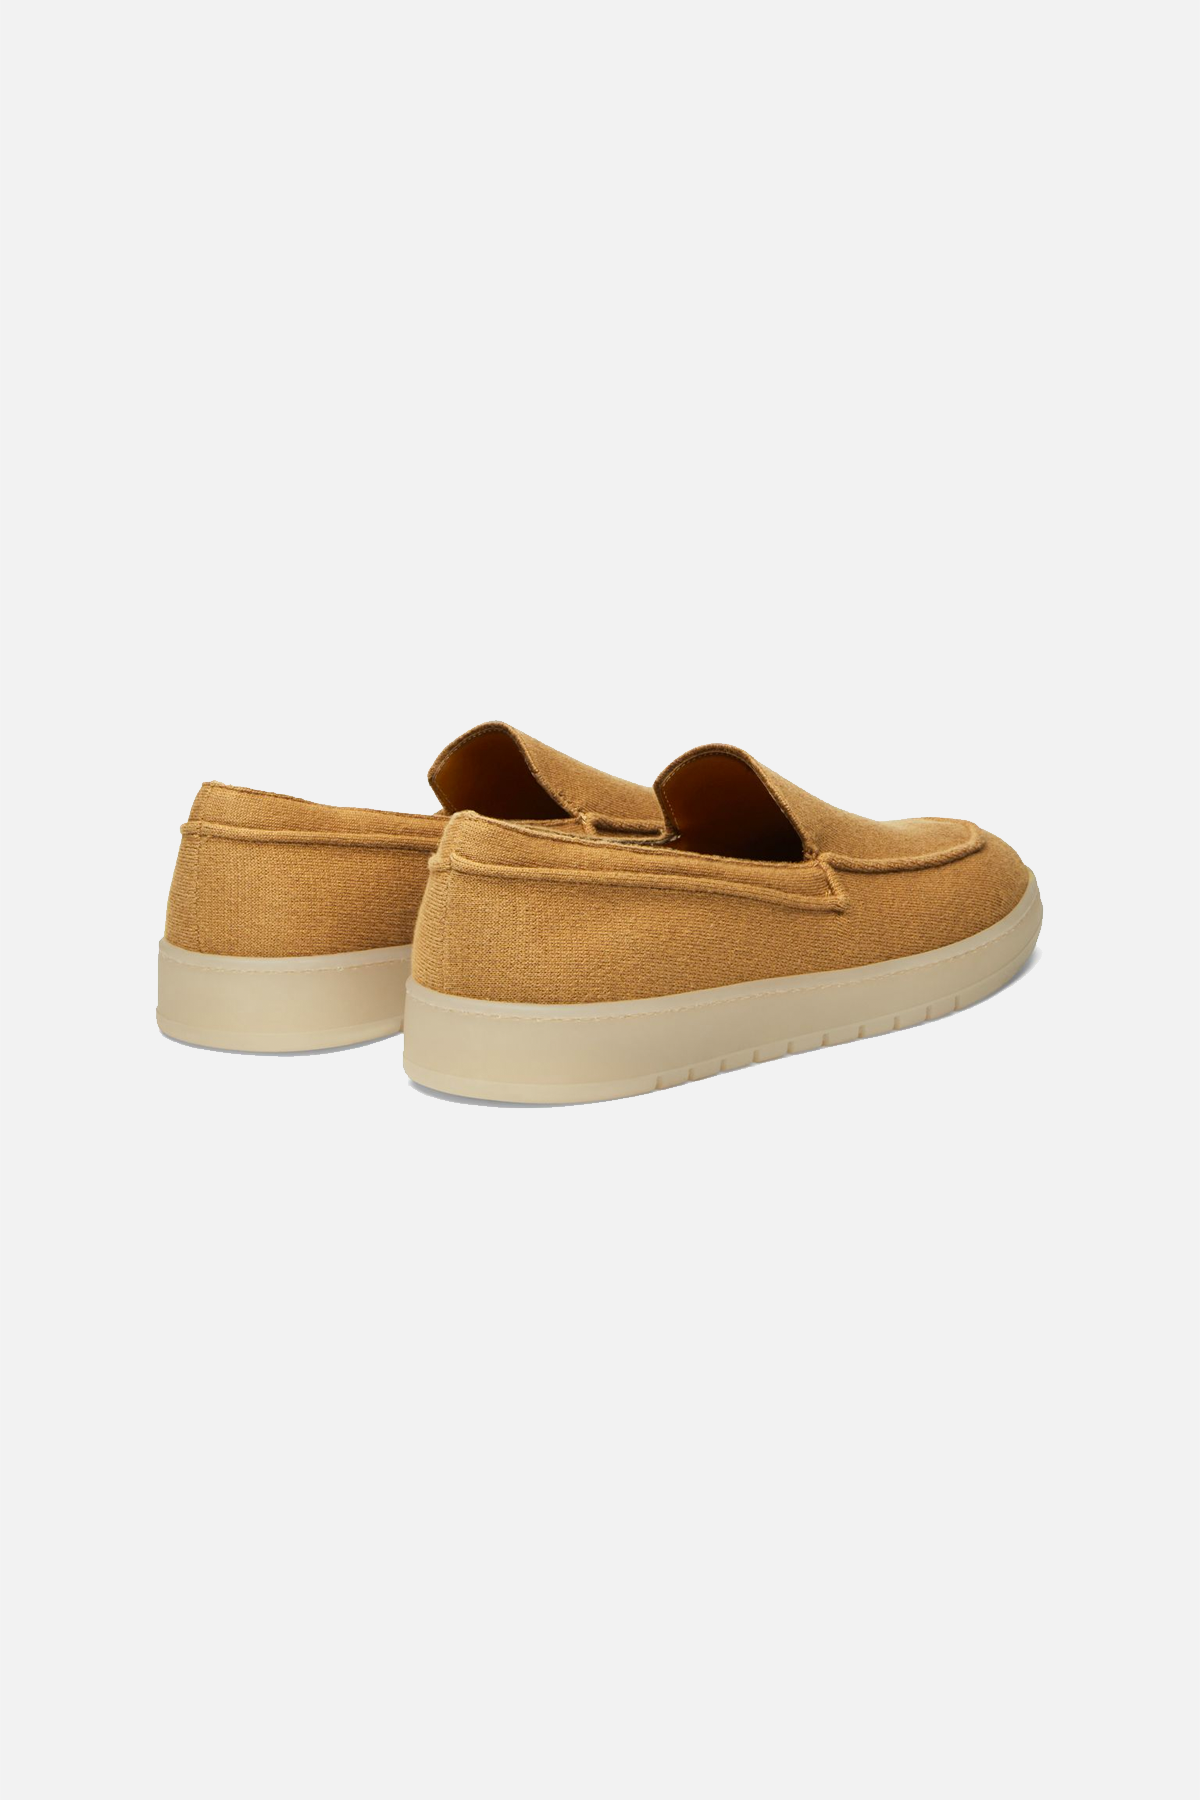 The Loafers in Tortilla